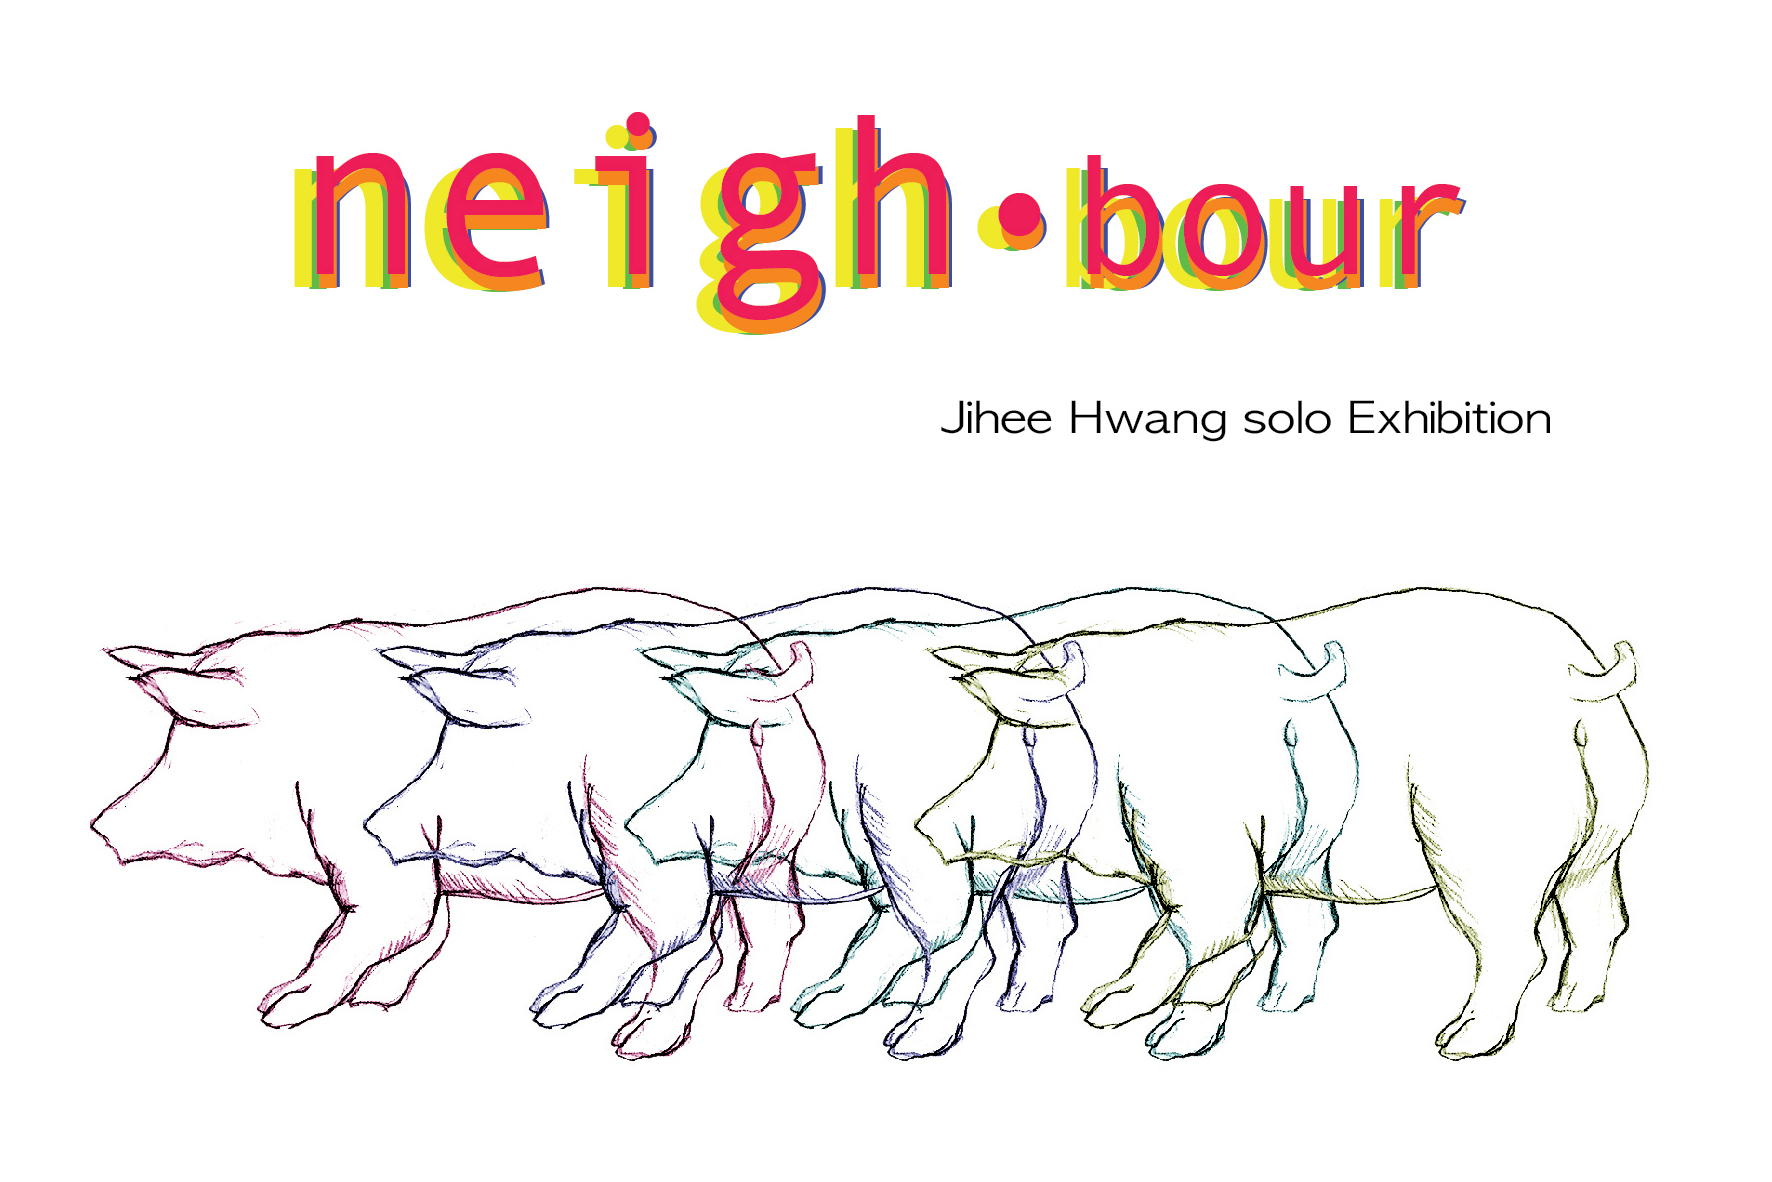 황지희 :: neigh·bour